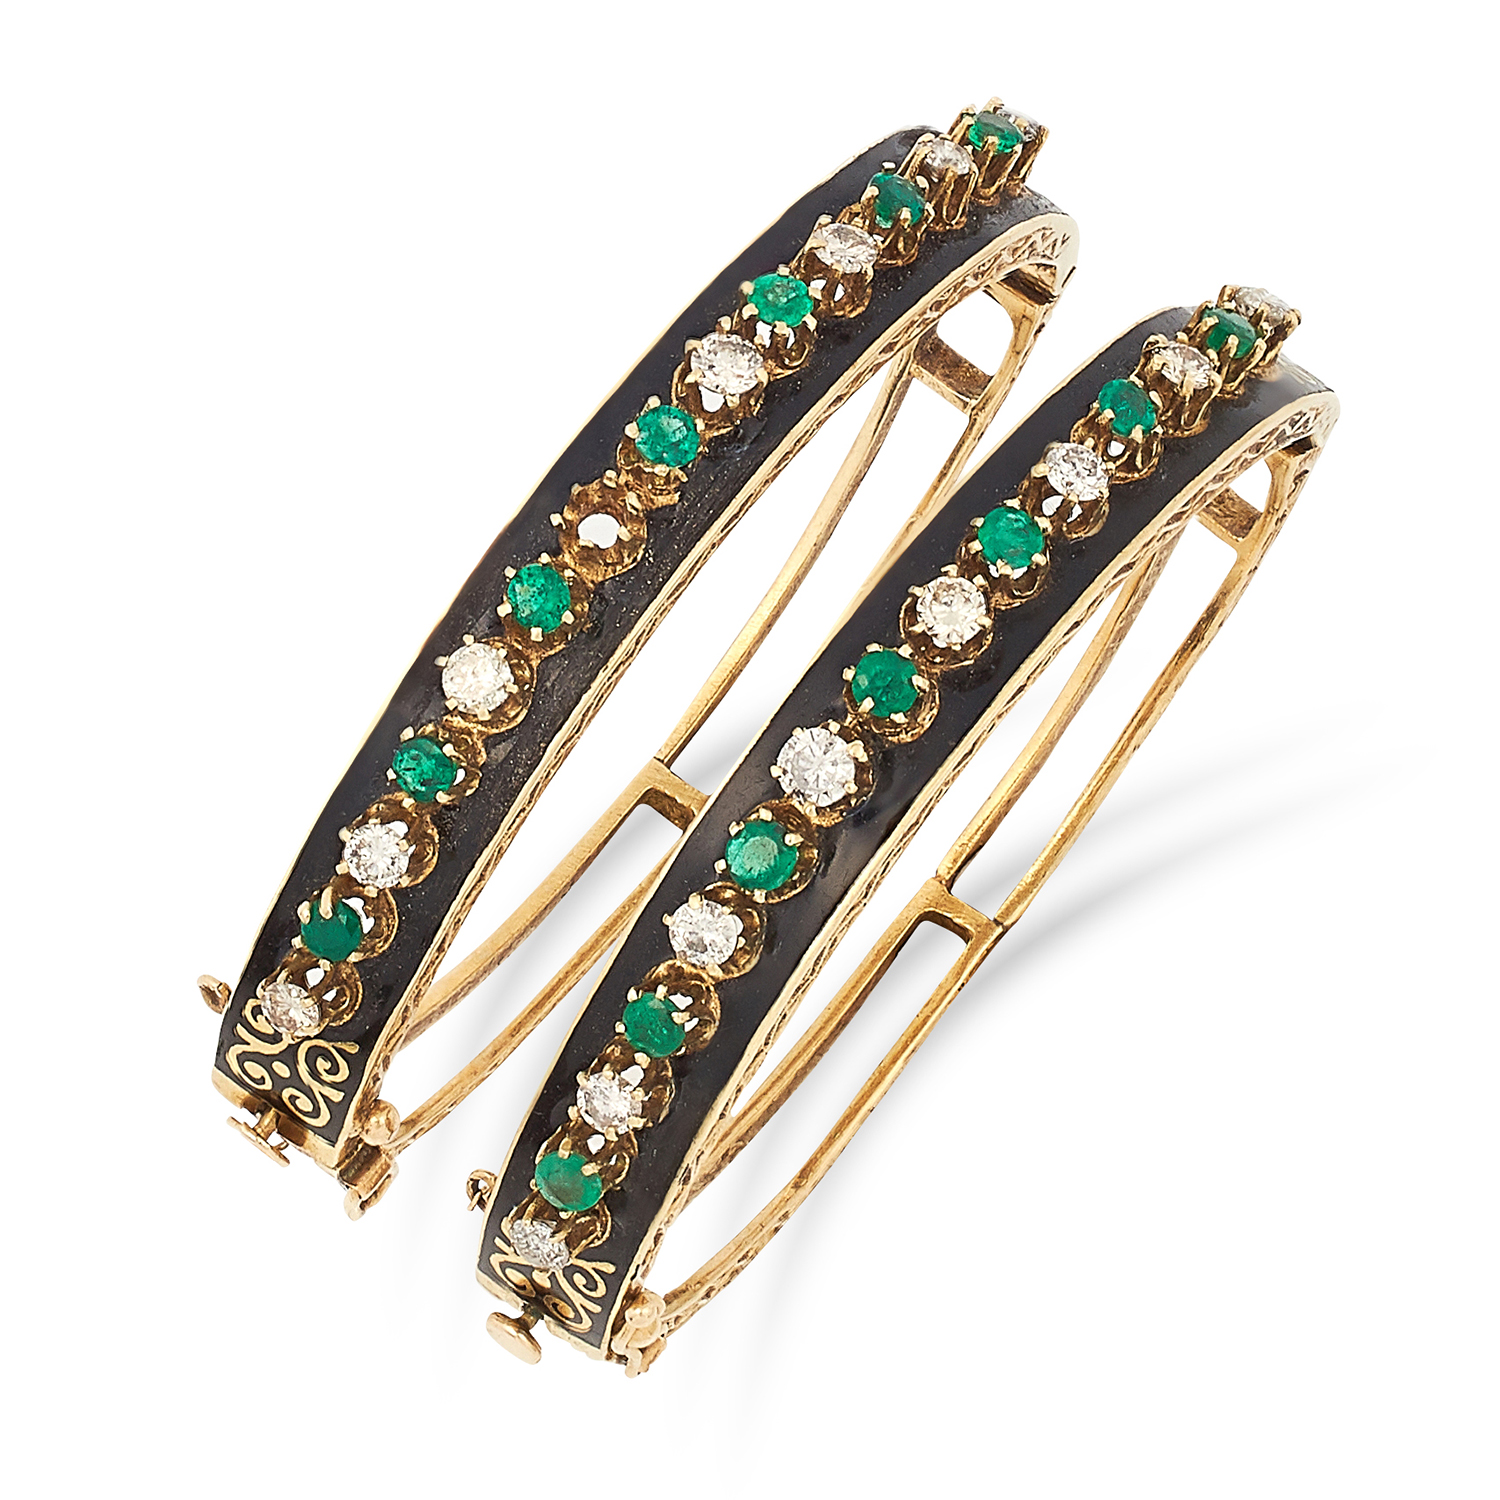 TWO EMERALD, DIAMOND AND ENAMEL BANGLES set with alternating round cut diamonds and emeralds on